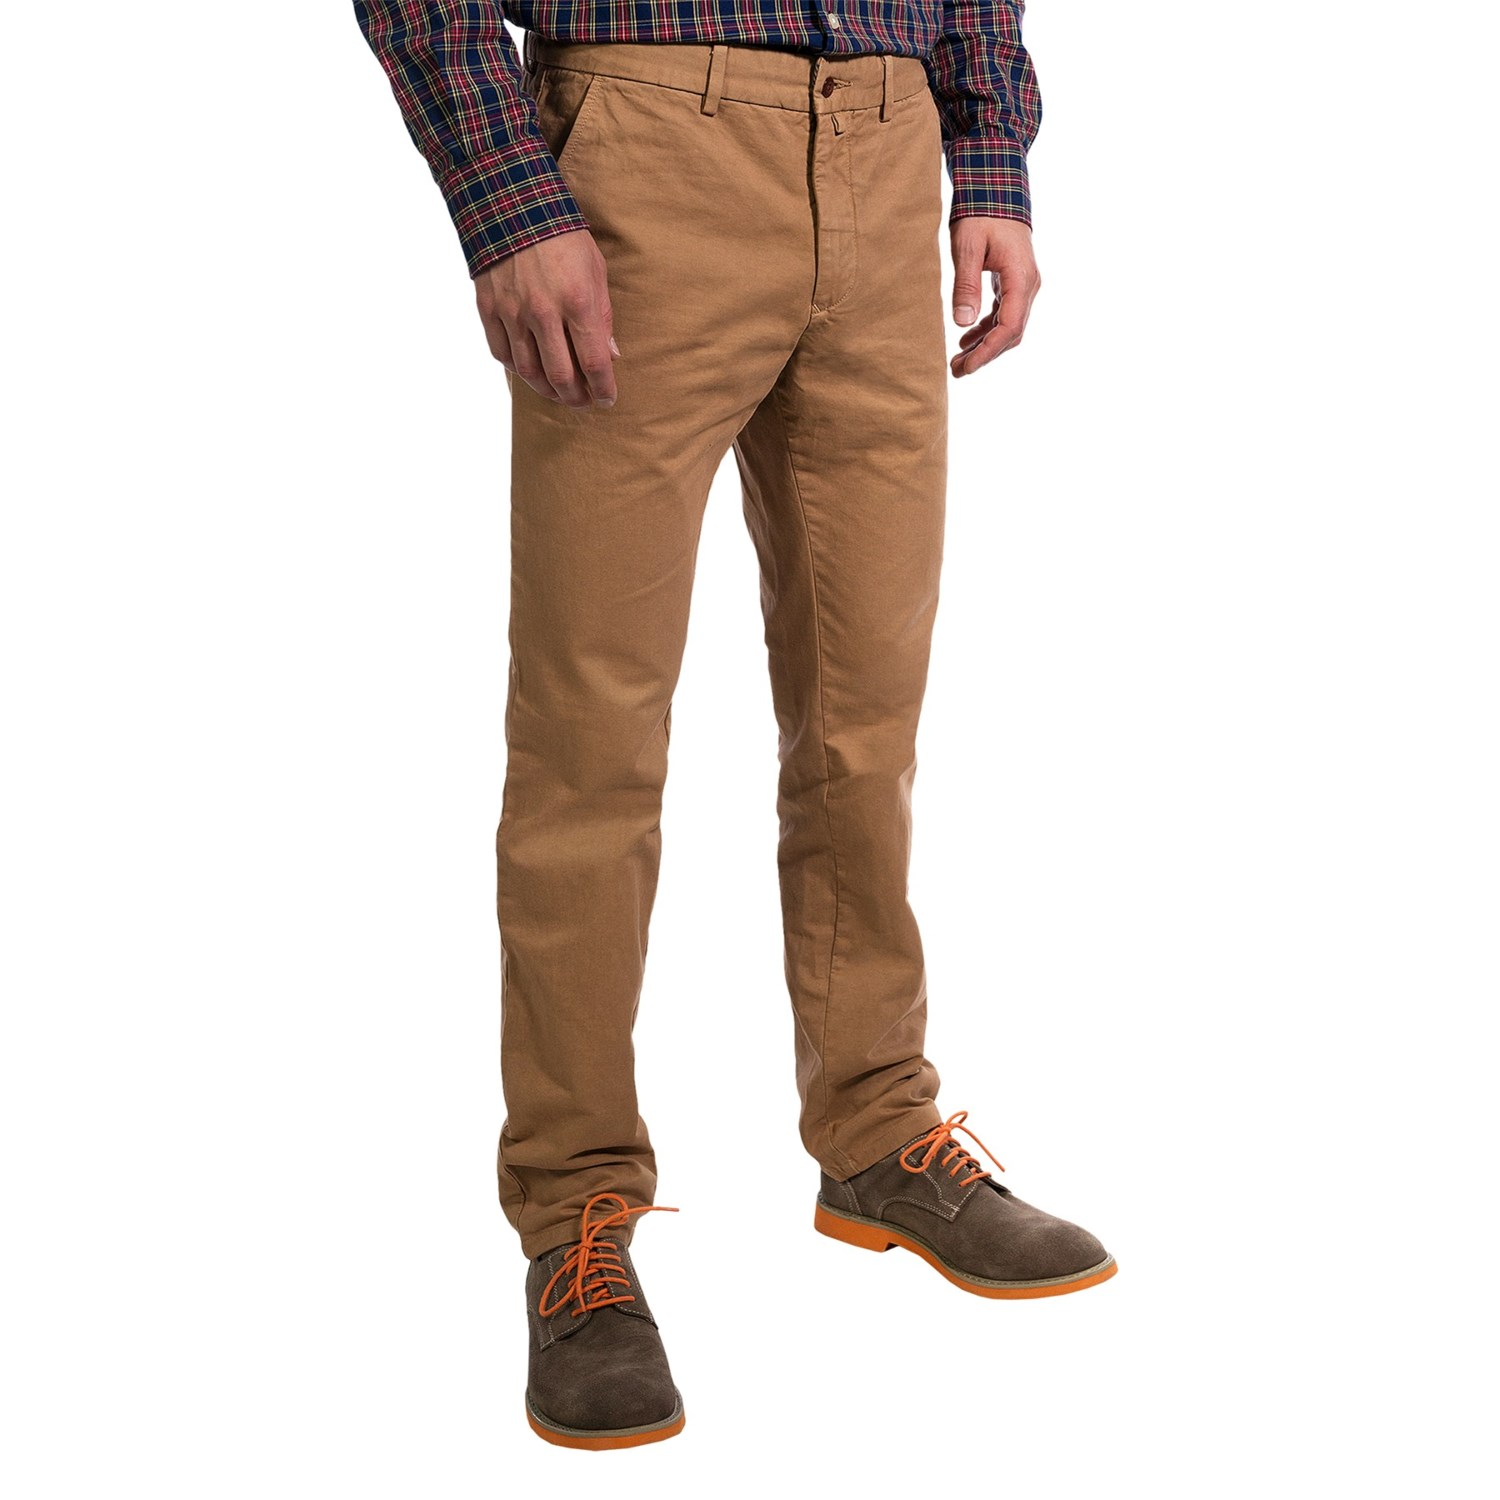 Shop for Men's Chinos - Tailored, Slim, Straight & Athletic Fit and get free shipping and returns. Bonobos offers better-fitting, high quality and comfortable clothing to match any occasion.